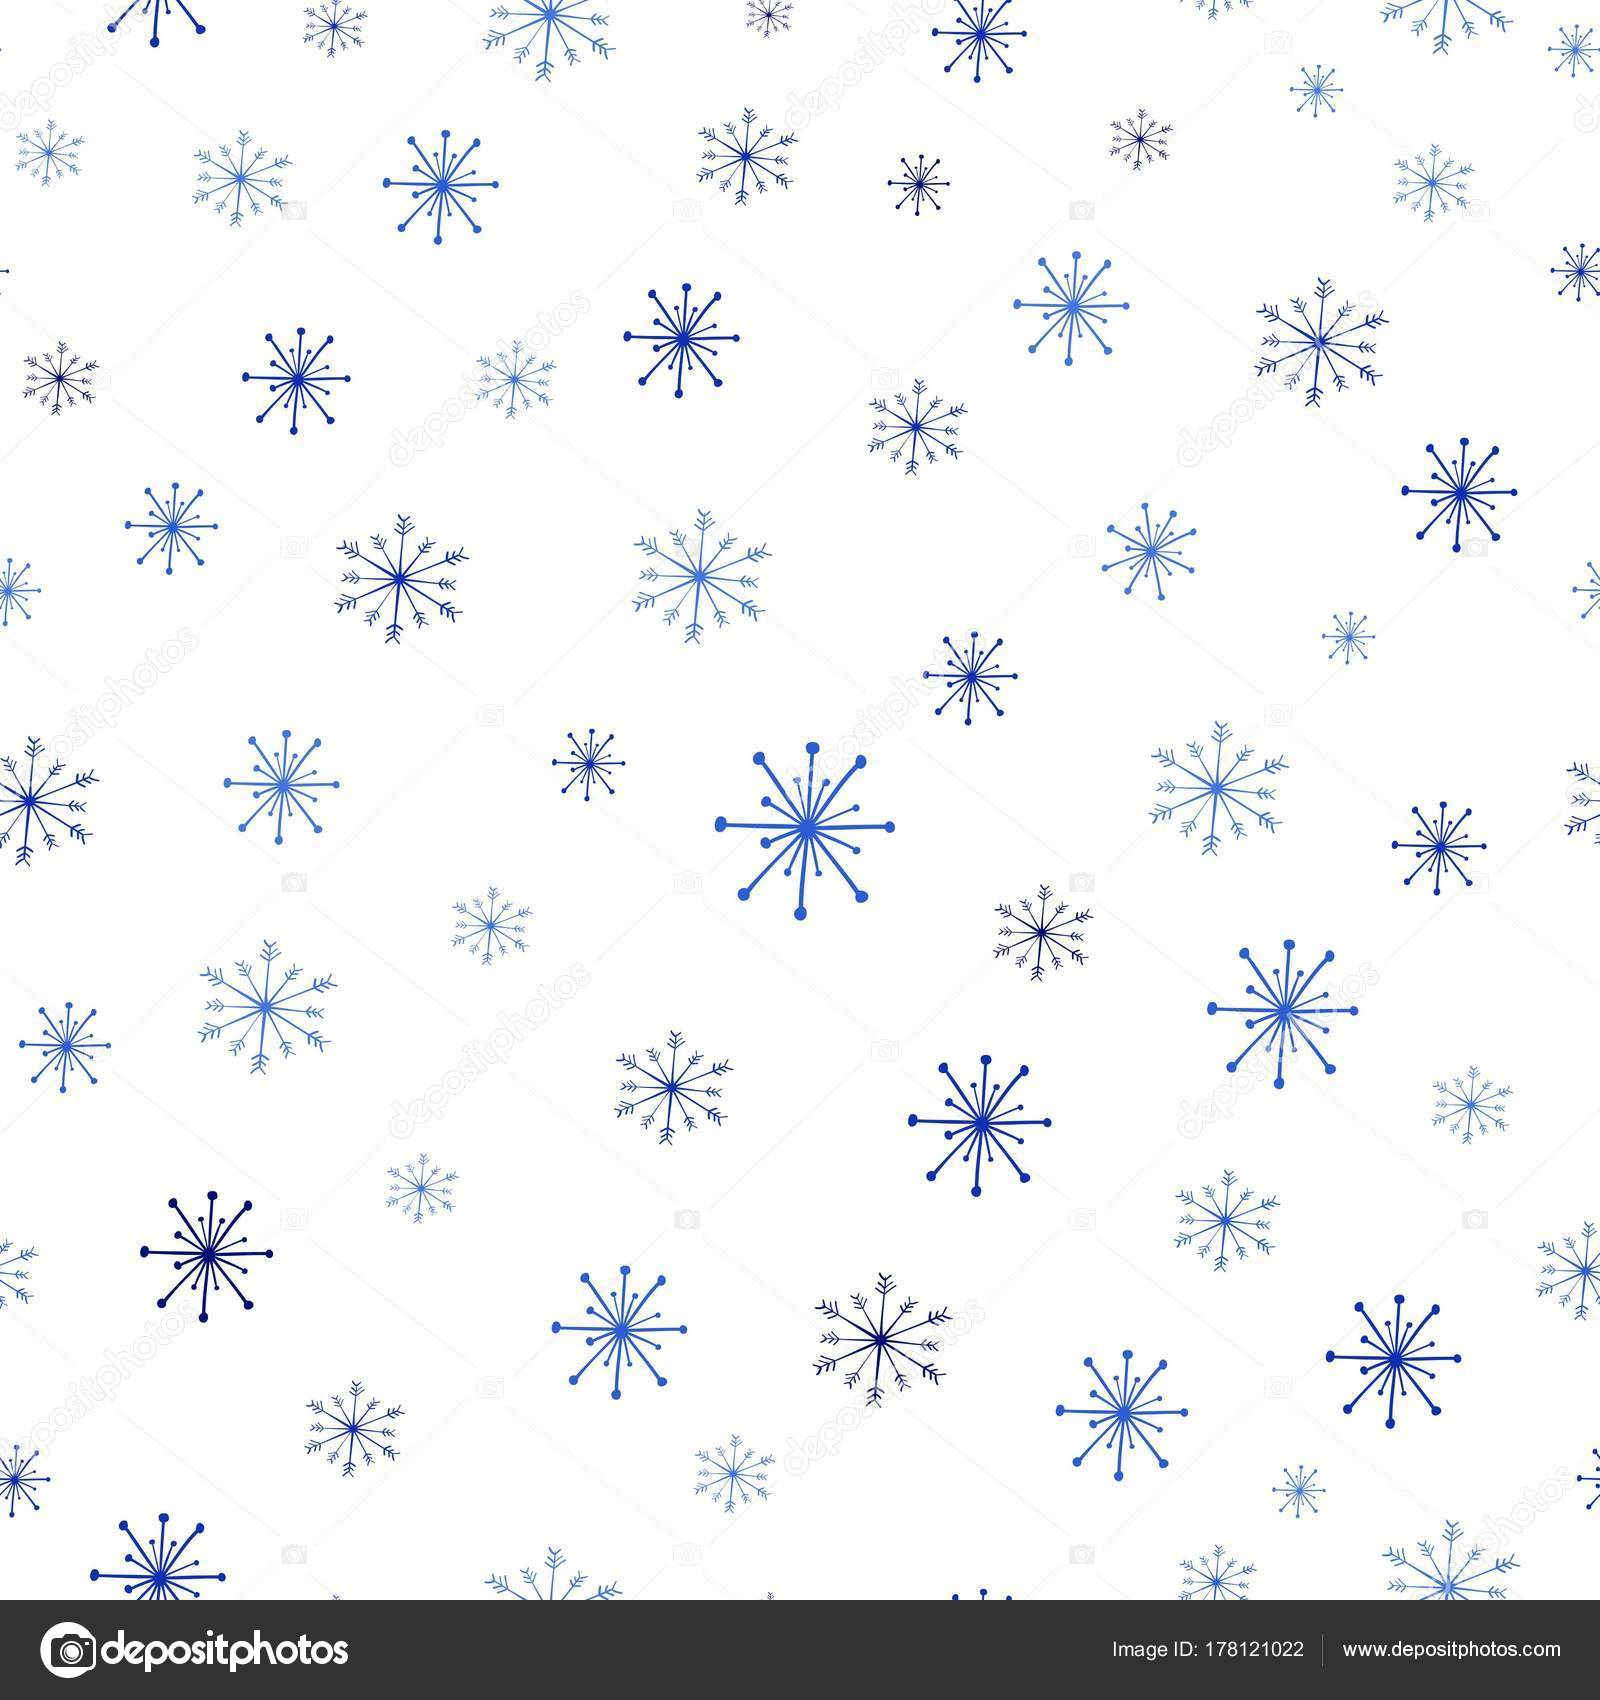 christmas seamless pattern with snowflakes on white background